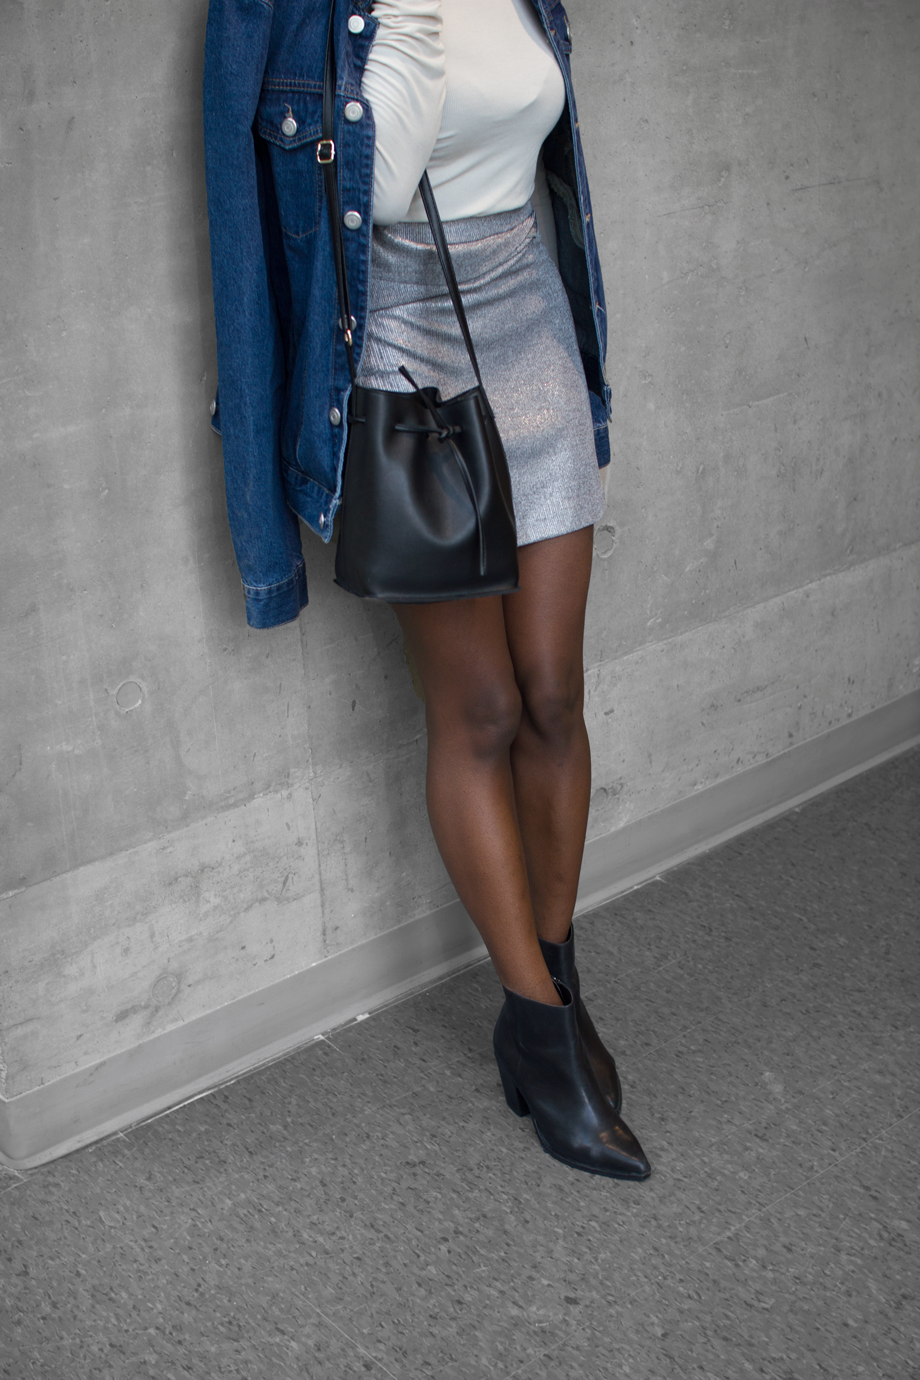 SILVER-ZARA-SKIRT,-WORN-TWO-WAYS,-HOW-TO-WEAR-ZARA-SKIRT